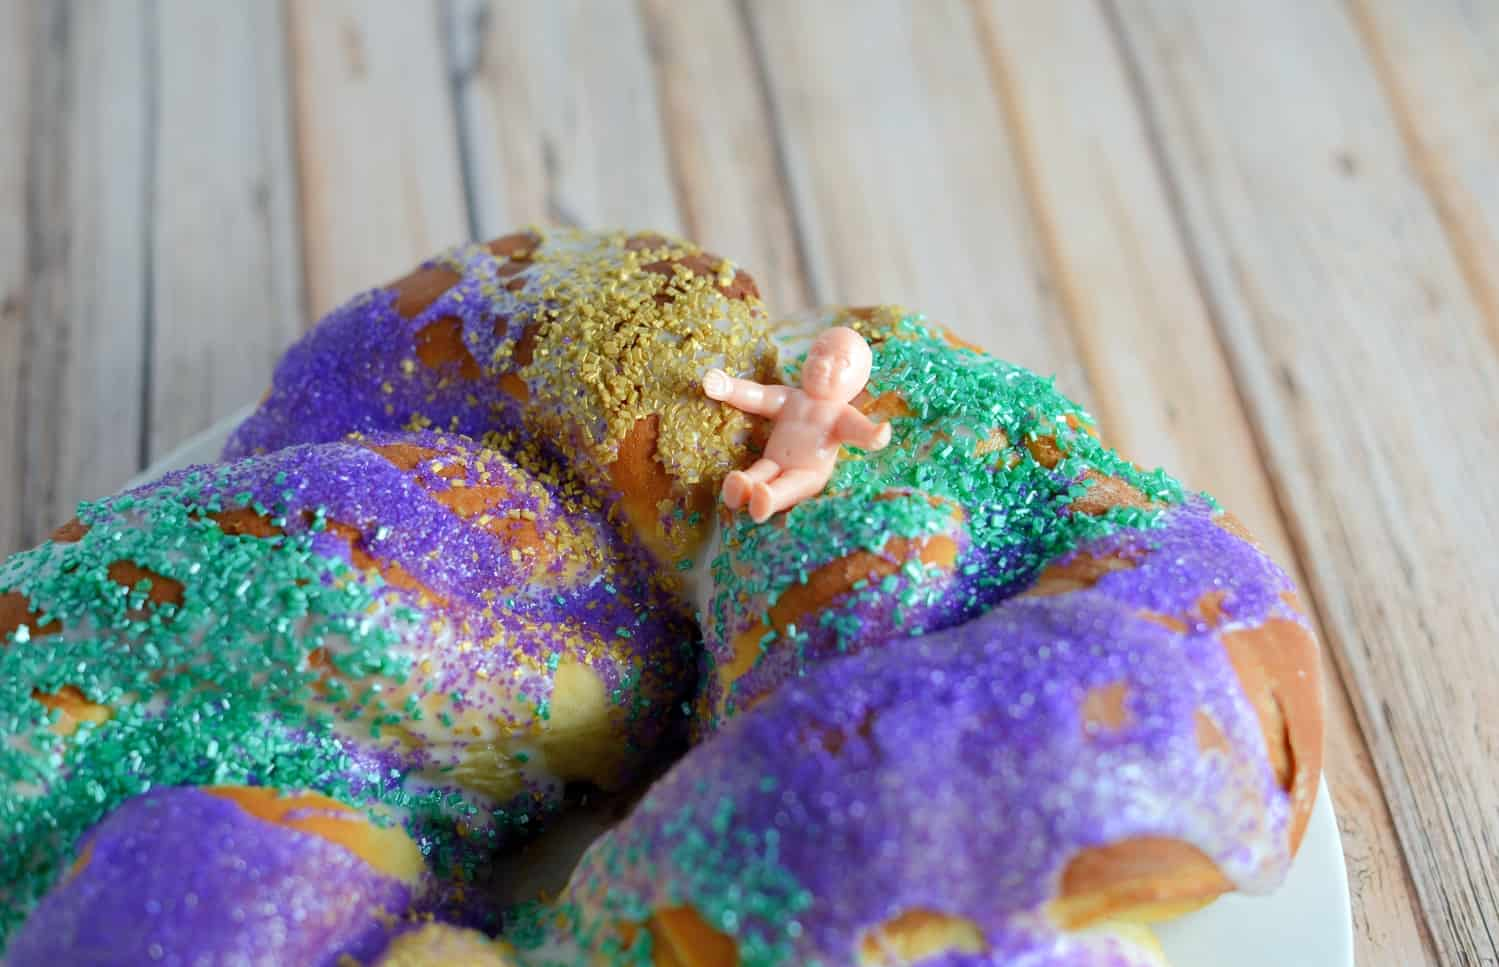 Mardi Gras King Cake Traditional Cake For Fat Tuesday